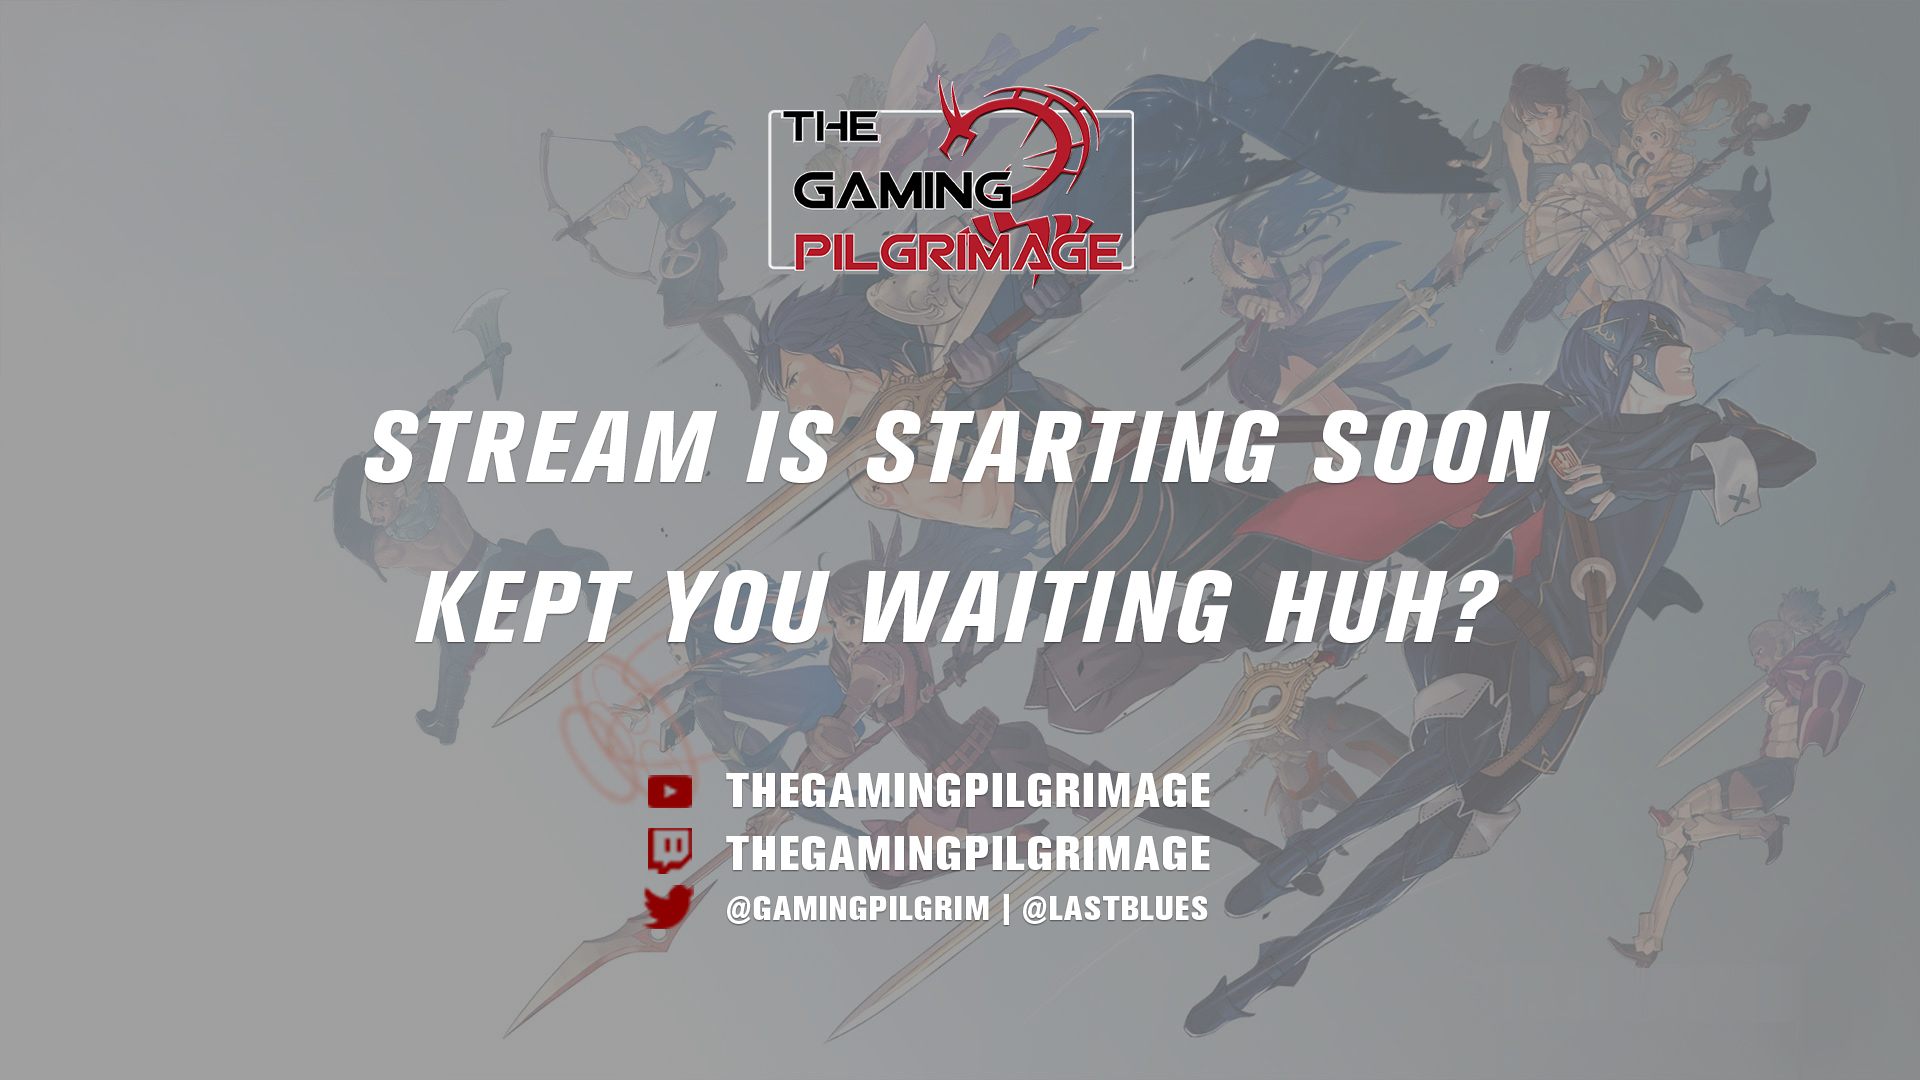 A status screen that shows up when the stream is starting